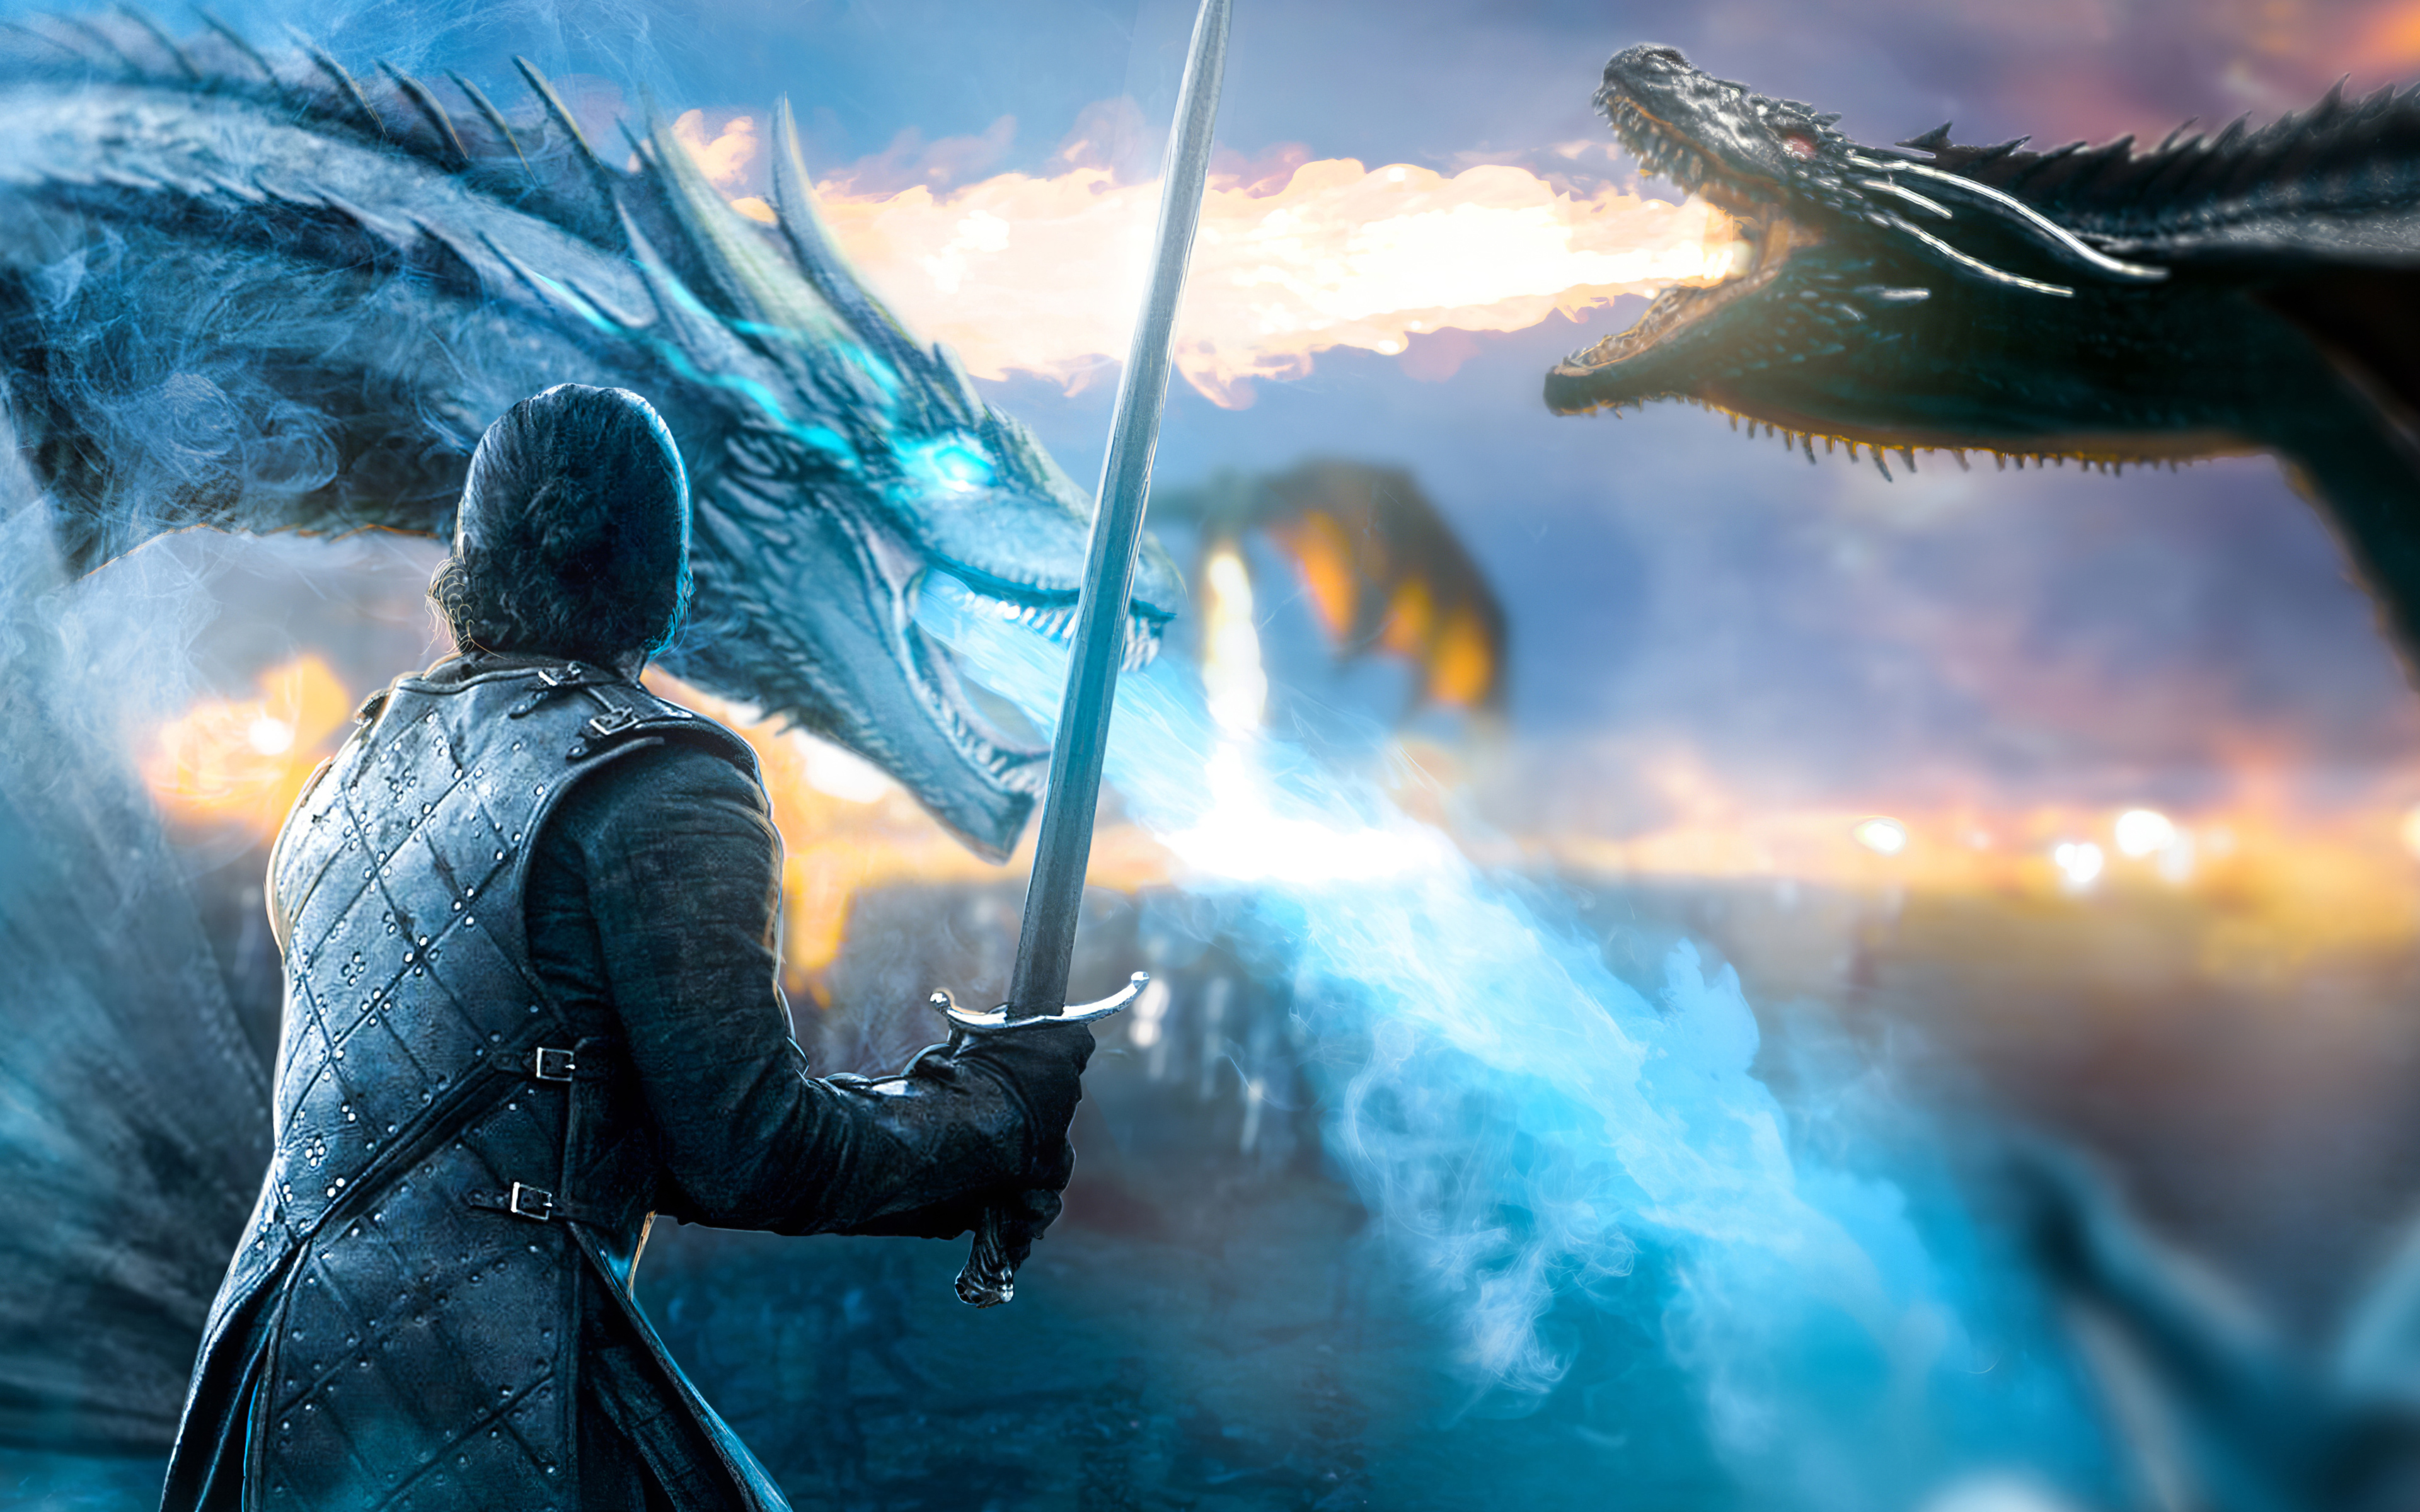 Wallpaper Jon Snow with dragon from Game of thrones